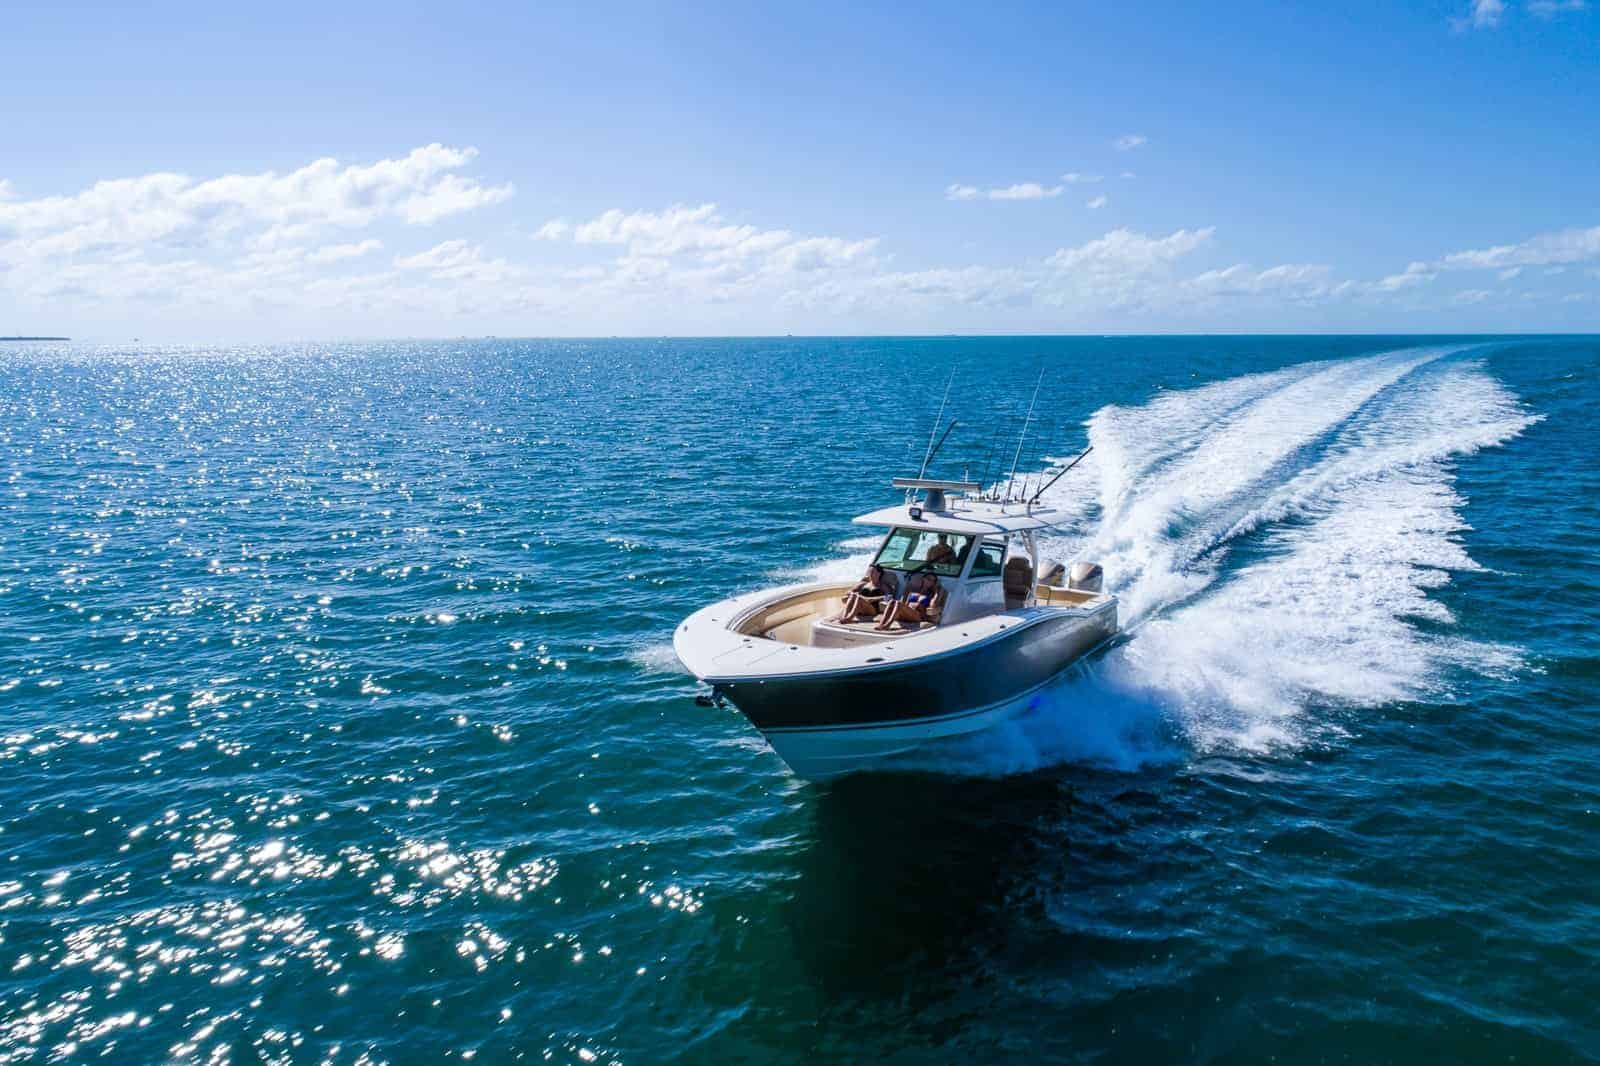 380LXF running with blue water